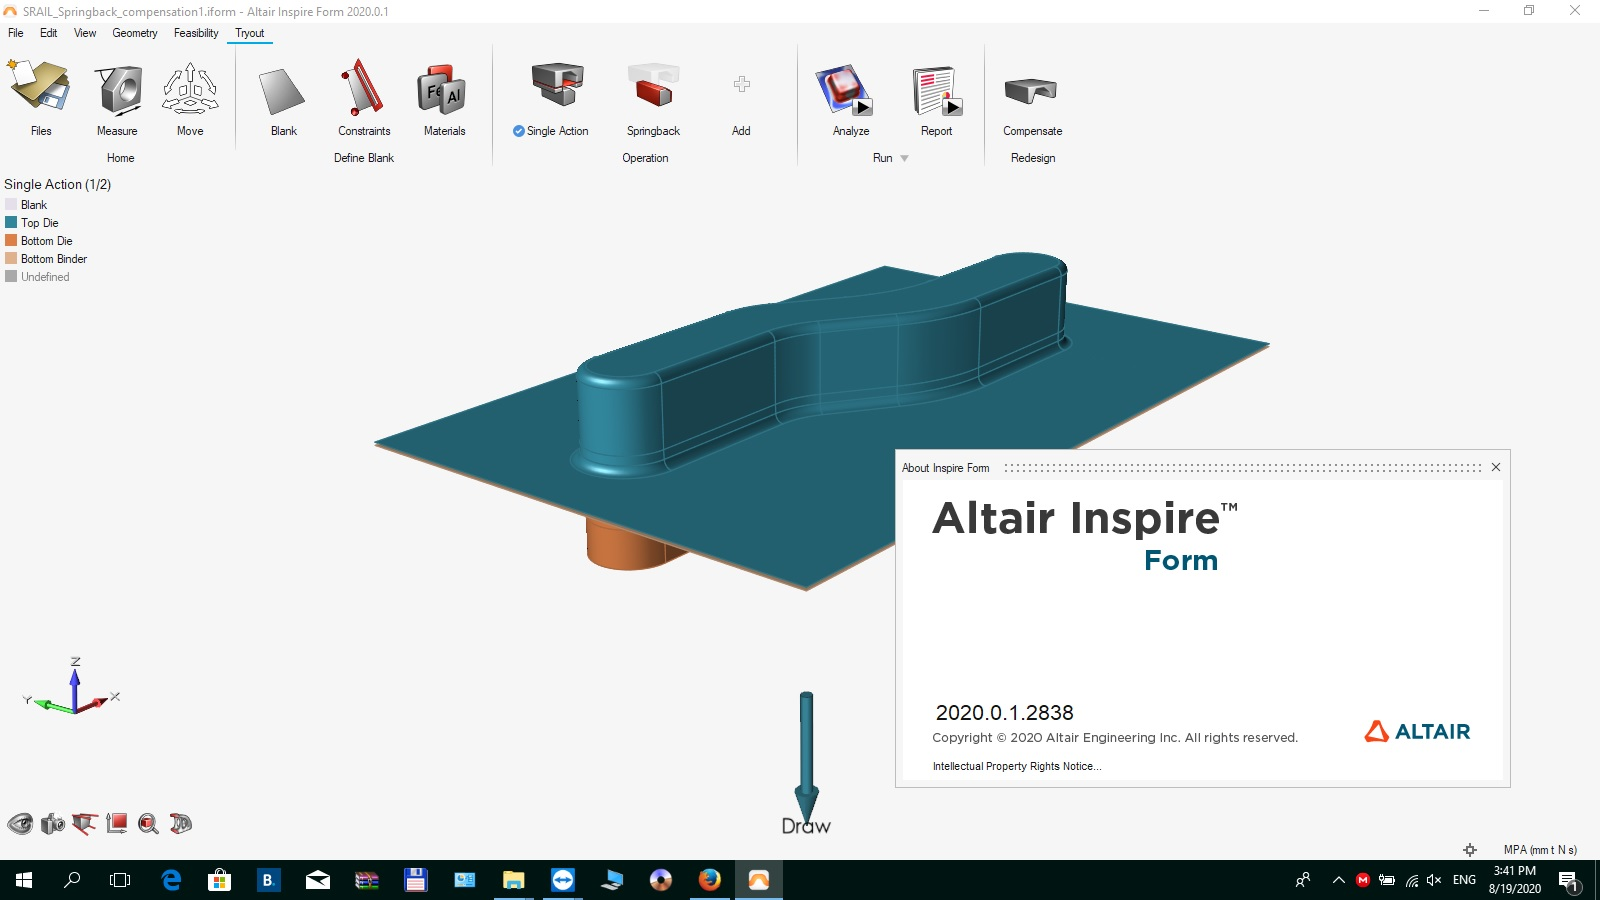 Working with Altair Inspire Form 2020.0.1 Build 2838 Win64 full